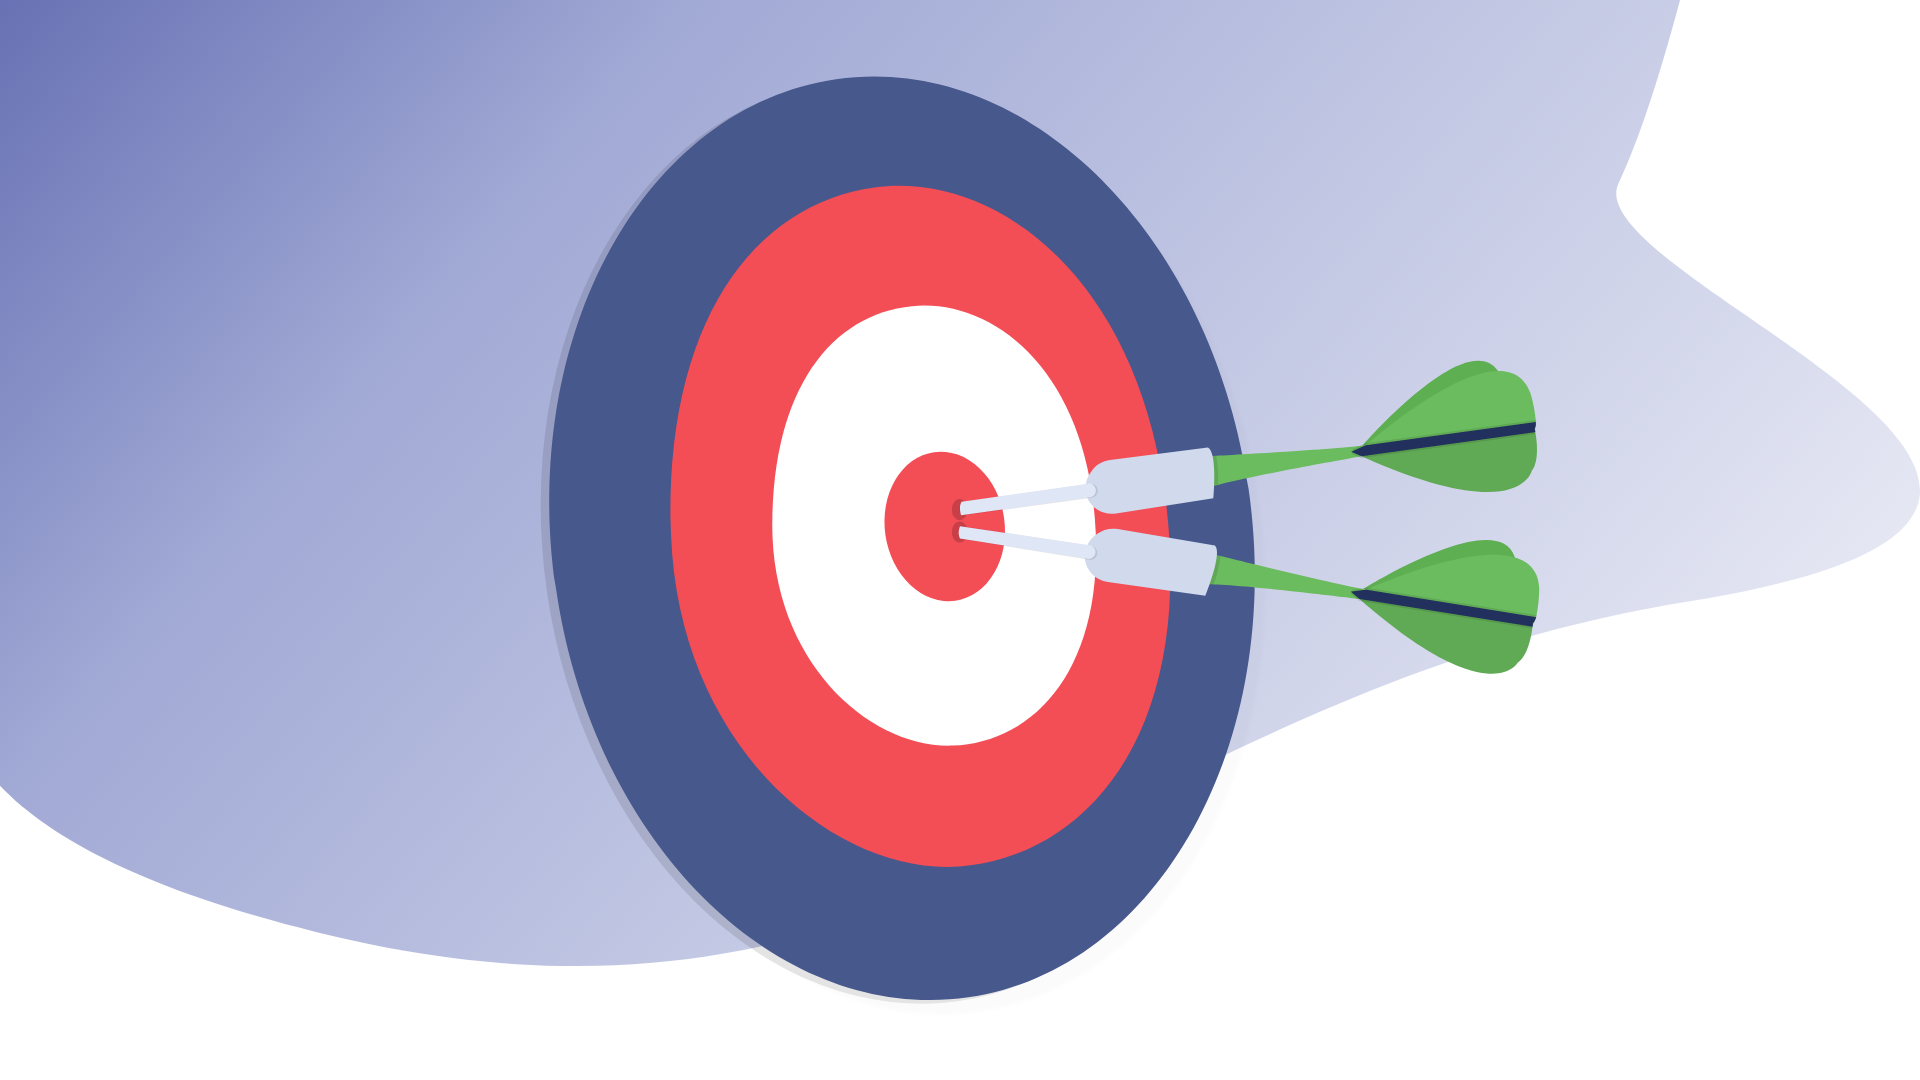 Two darts in the center of a target.